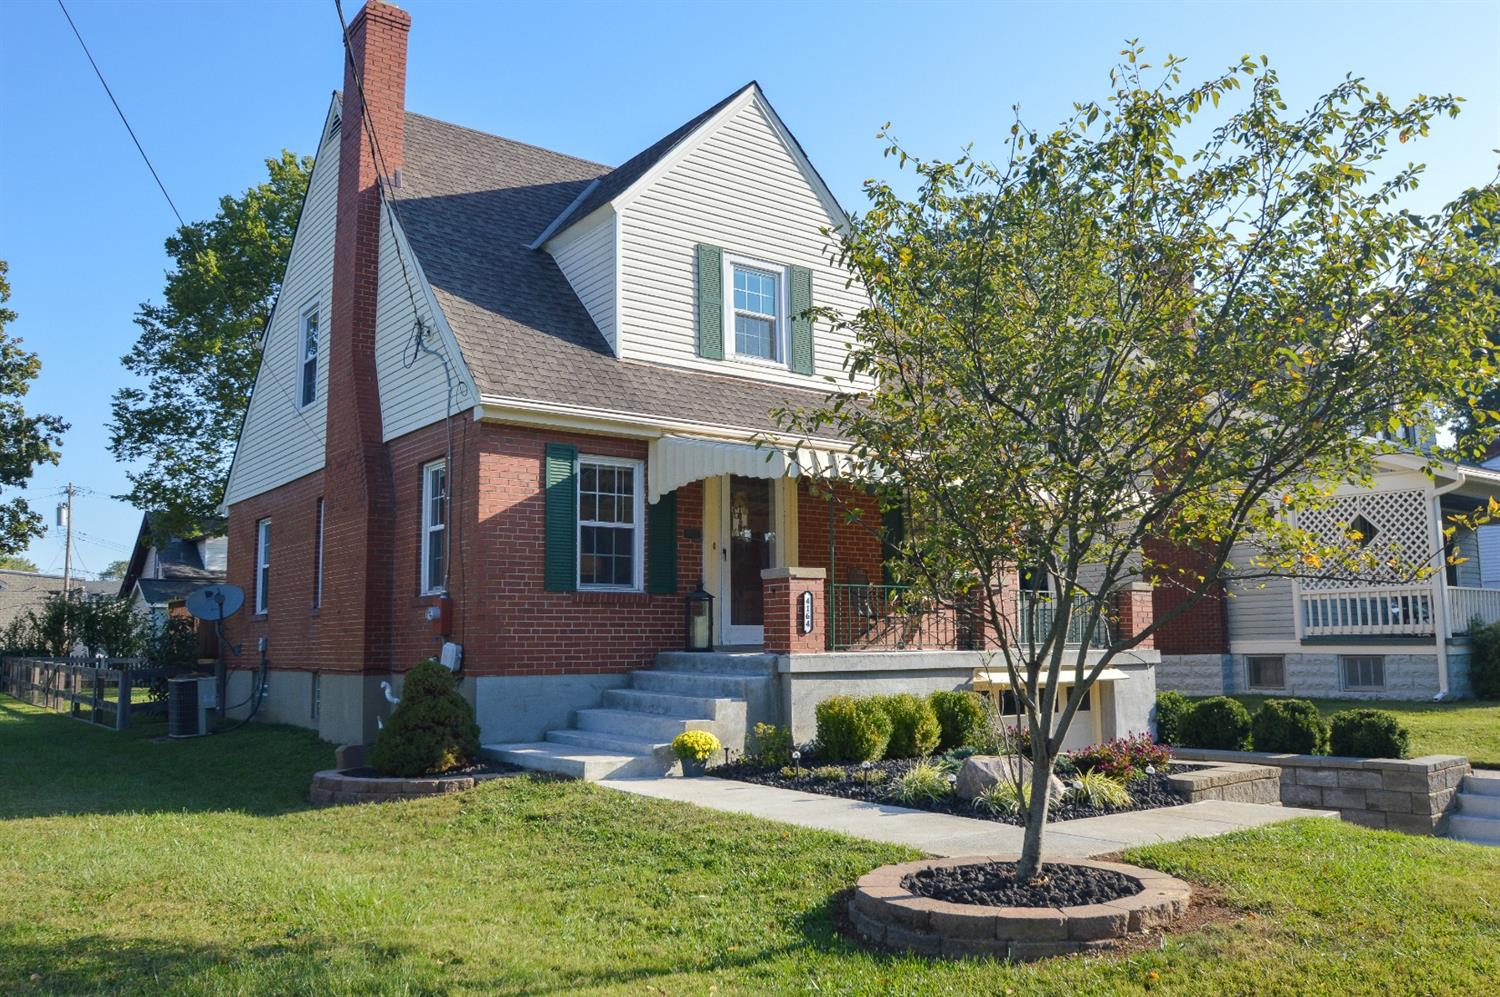 4164 Webster Avenue, Deer Park, Ohio 45236, 3 Bedrooms Bedrooms, 7 Rooms Rooms,1 BathroomBathrooms,Single Family Residence,For Sale,Webster,1718845